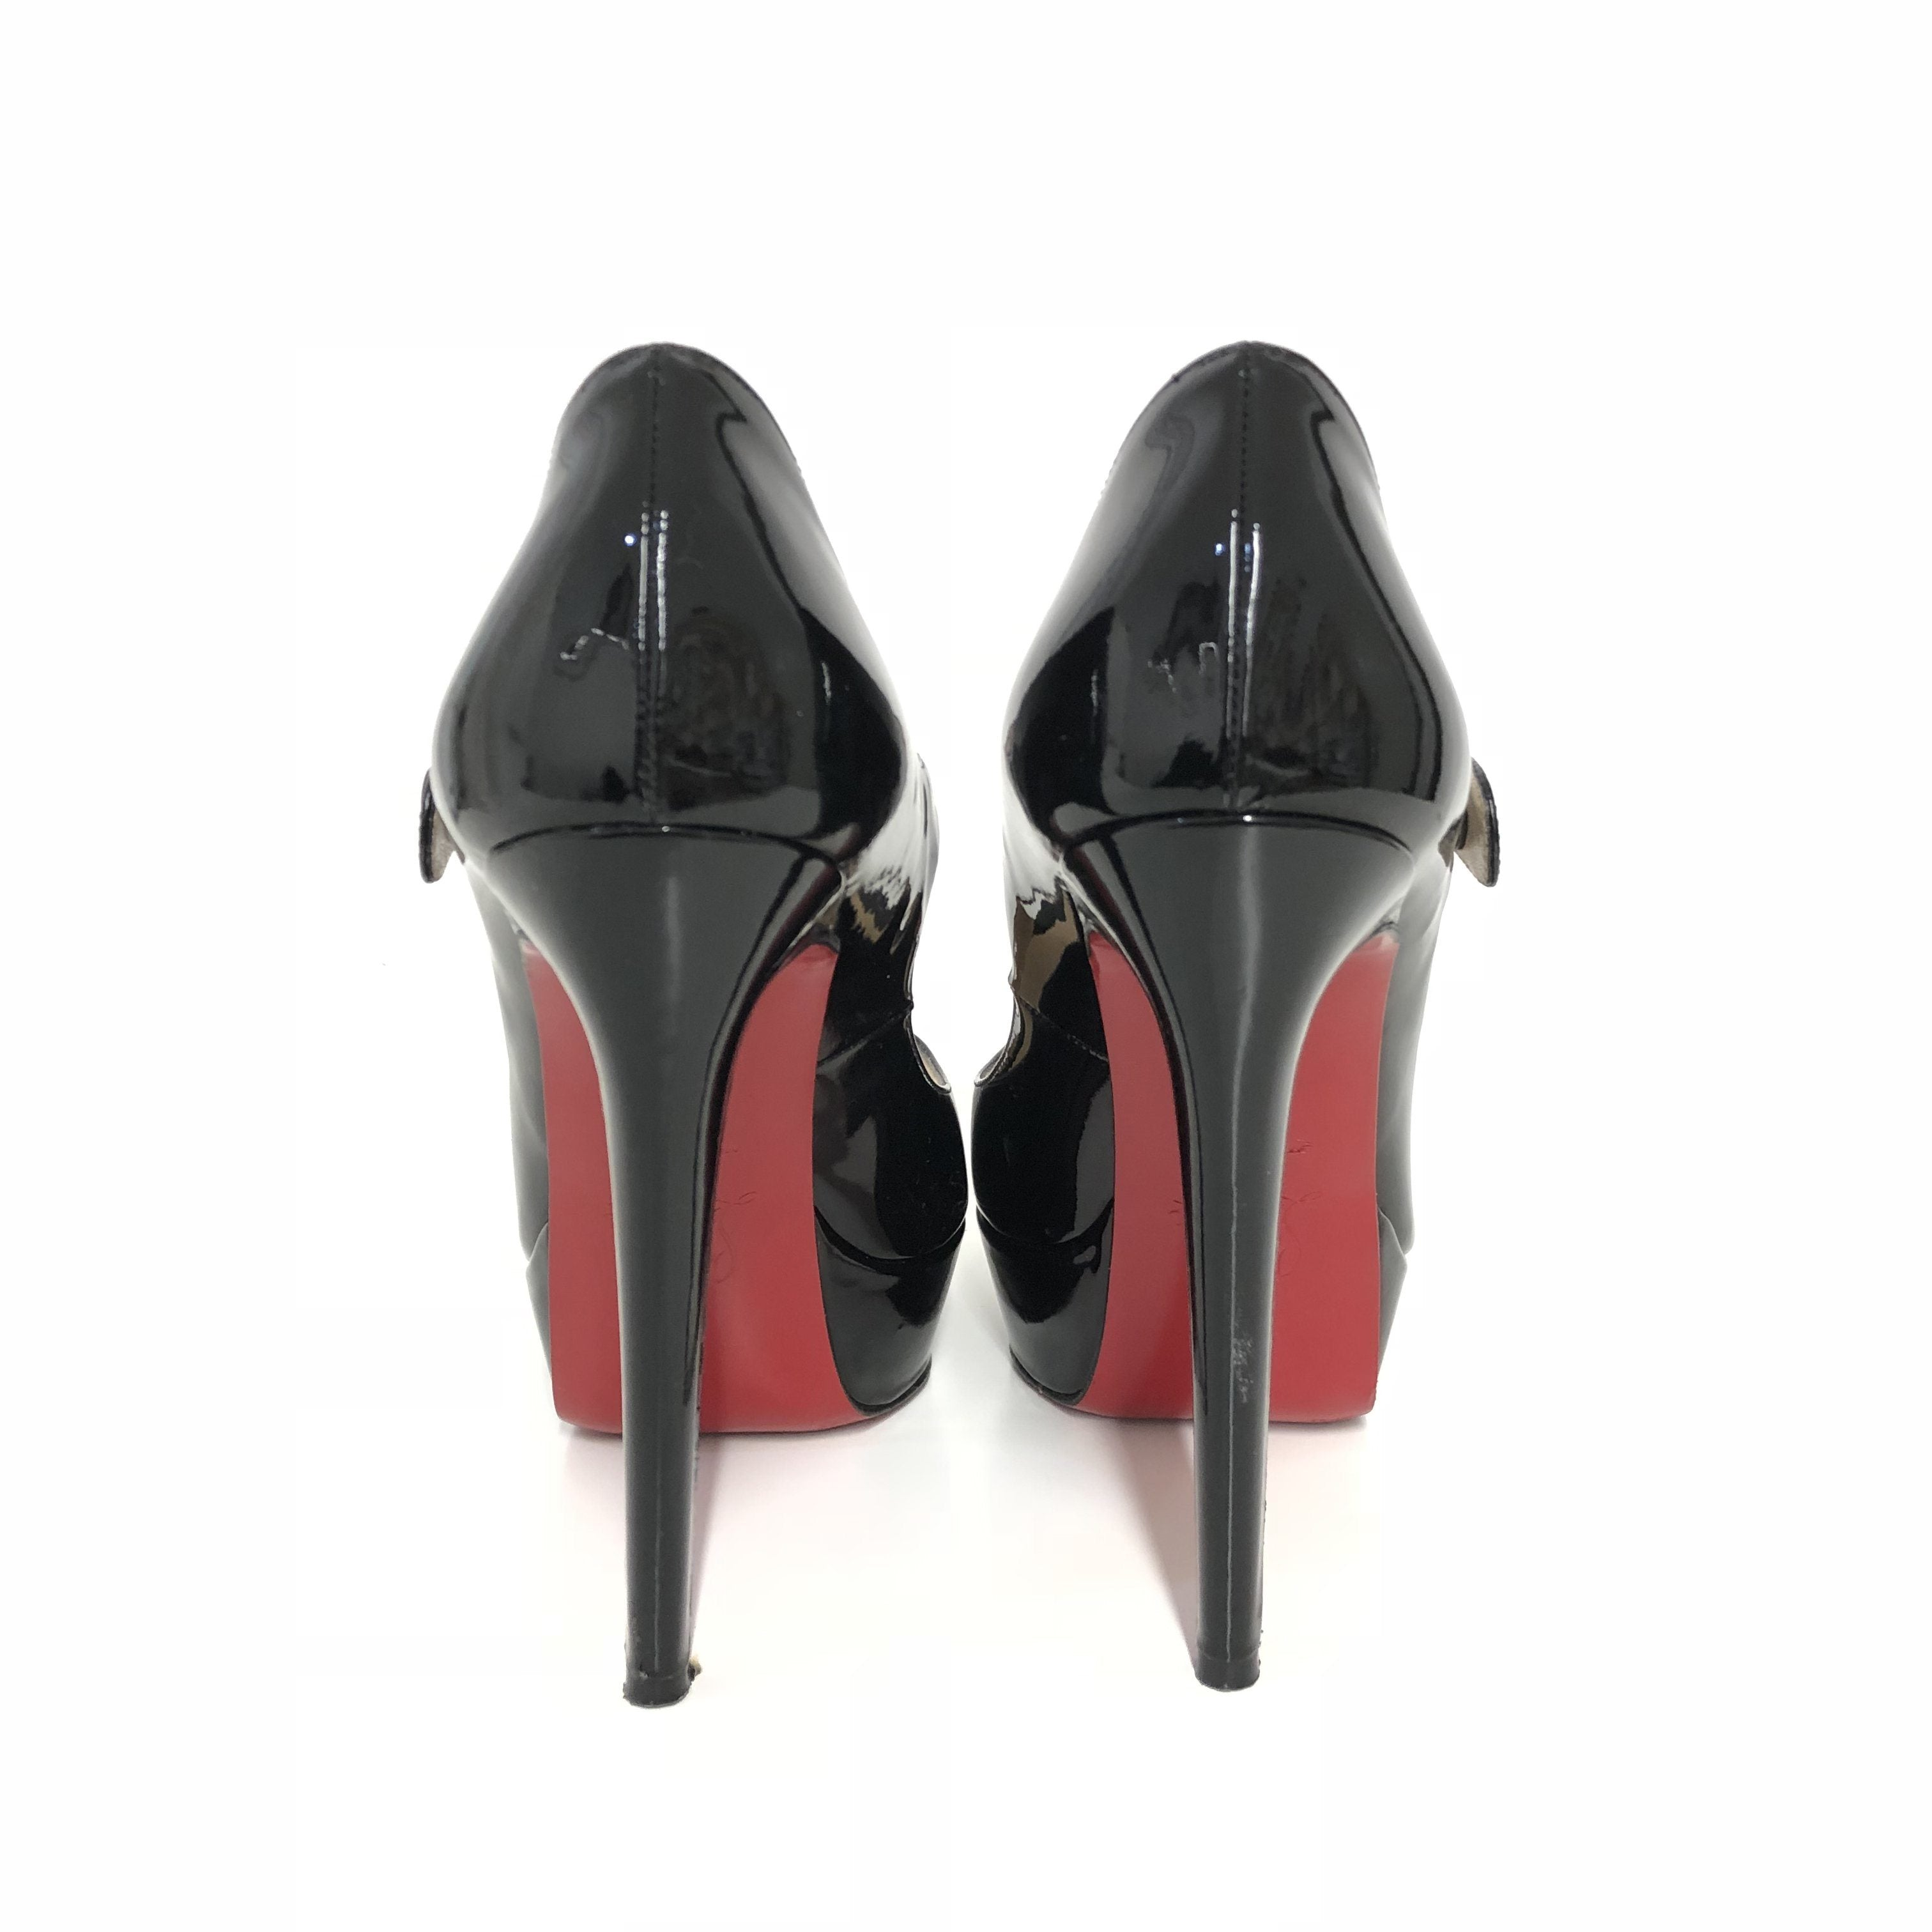 Christian Louboutin Bana 140 Patent Mary Jane Pumps